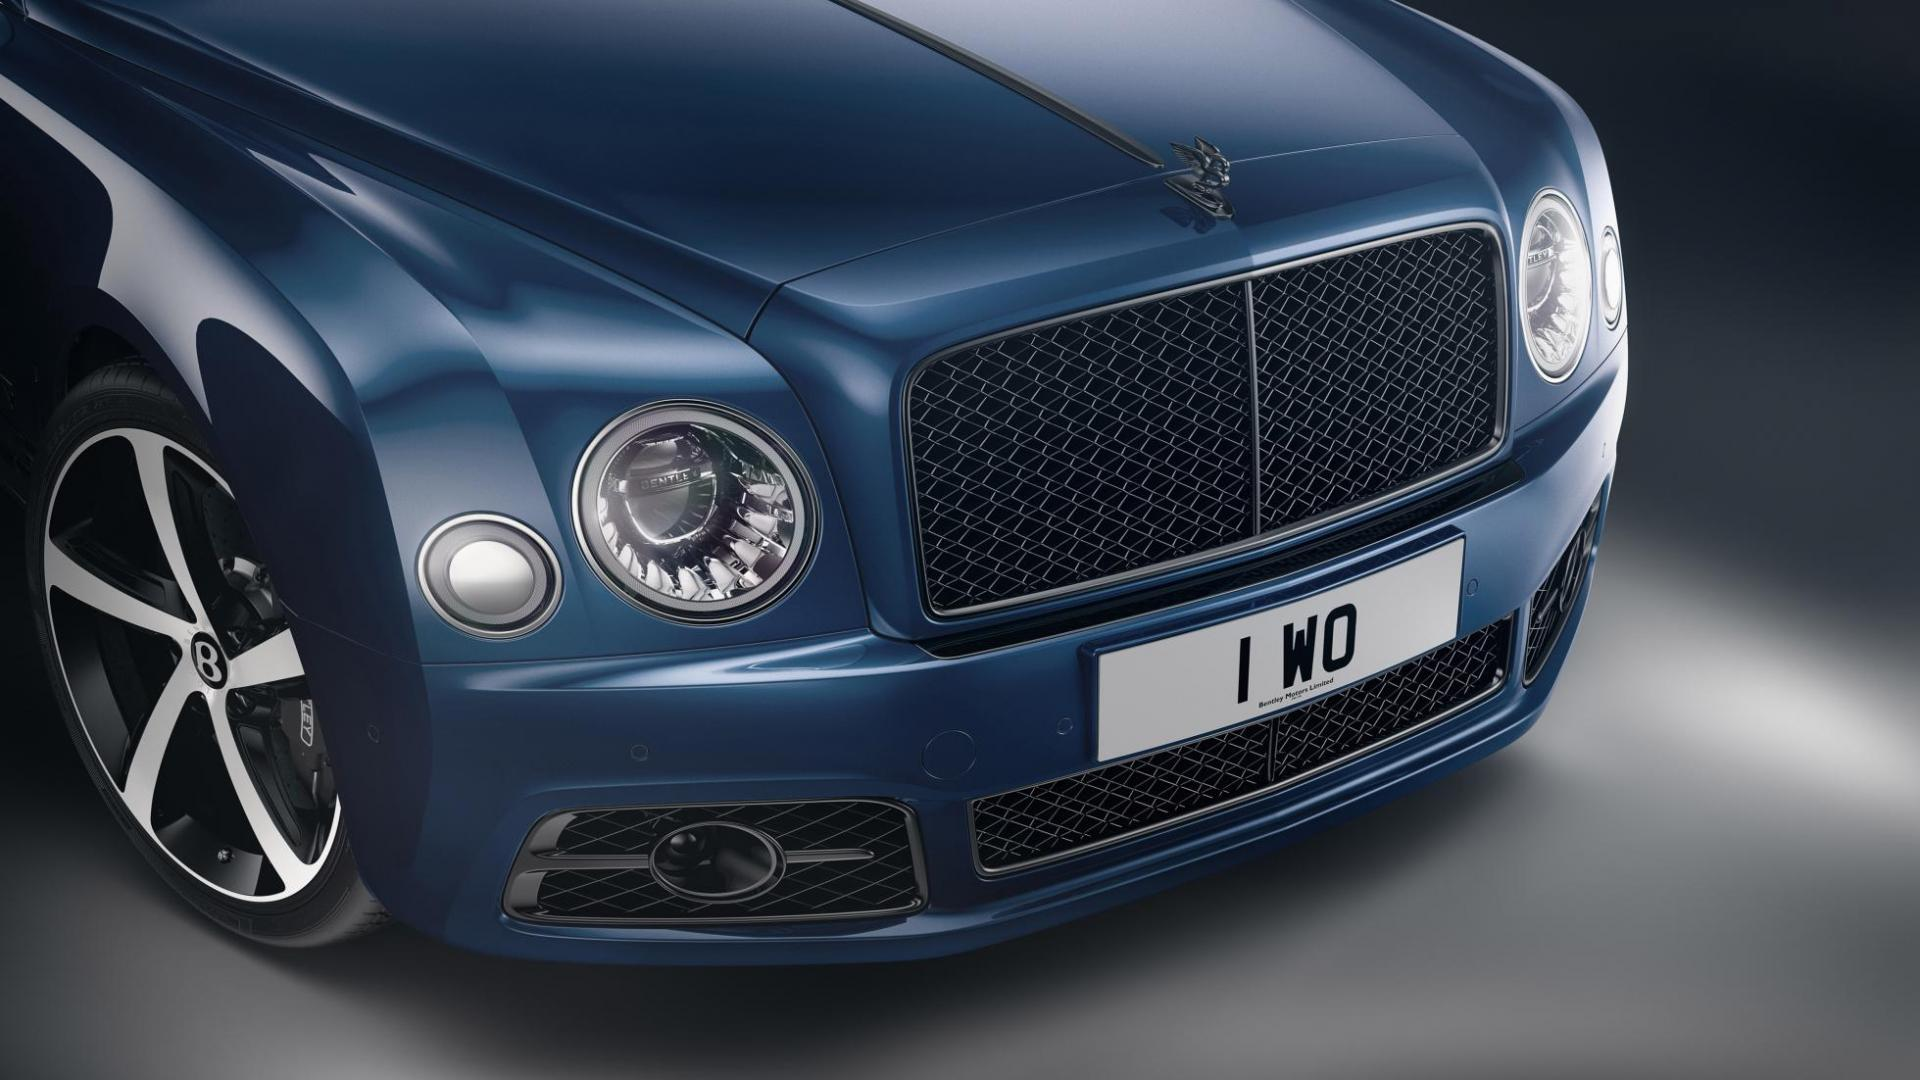 Bentley Mulsanne 6.75 Edition by Mulliner grille koplampen